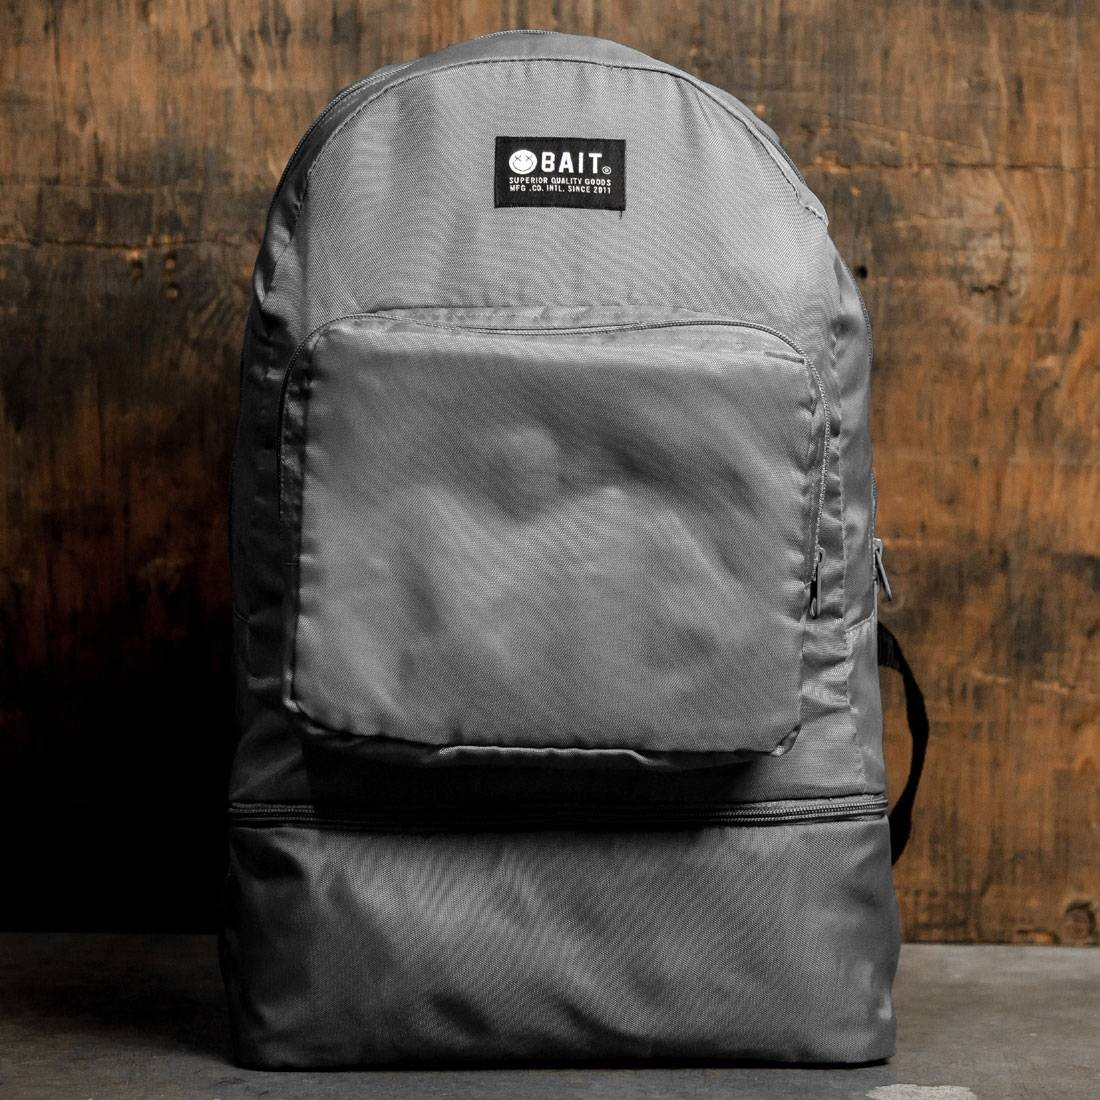 BAIT Lightweight Packable And Detachable Sneaker Nylon Backpack (gray)